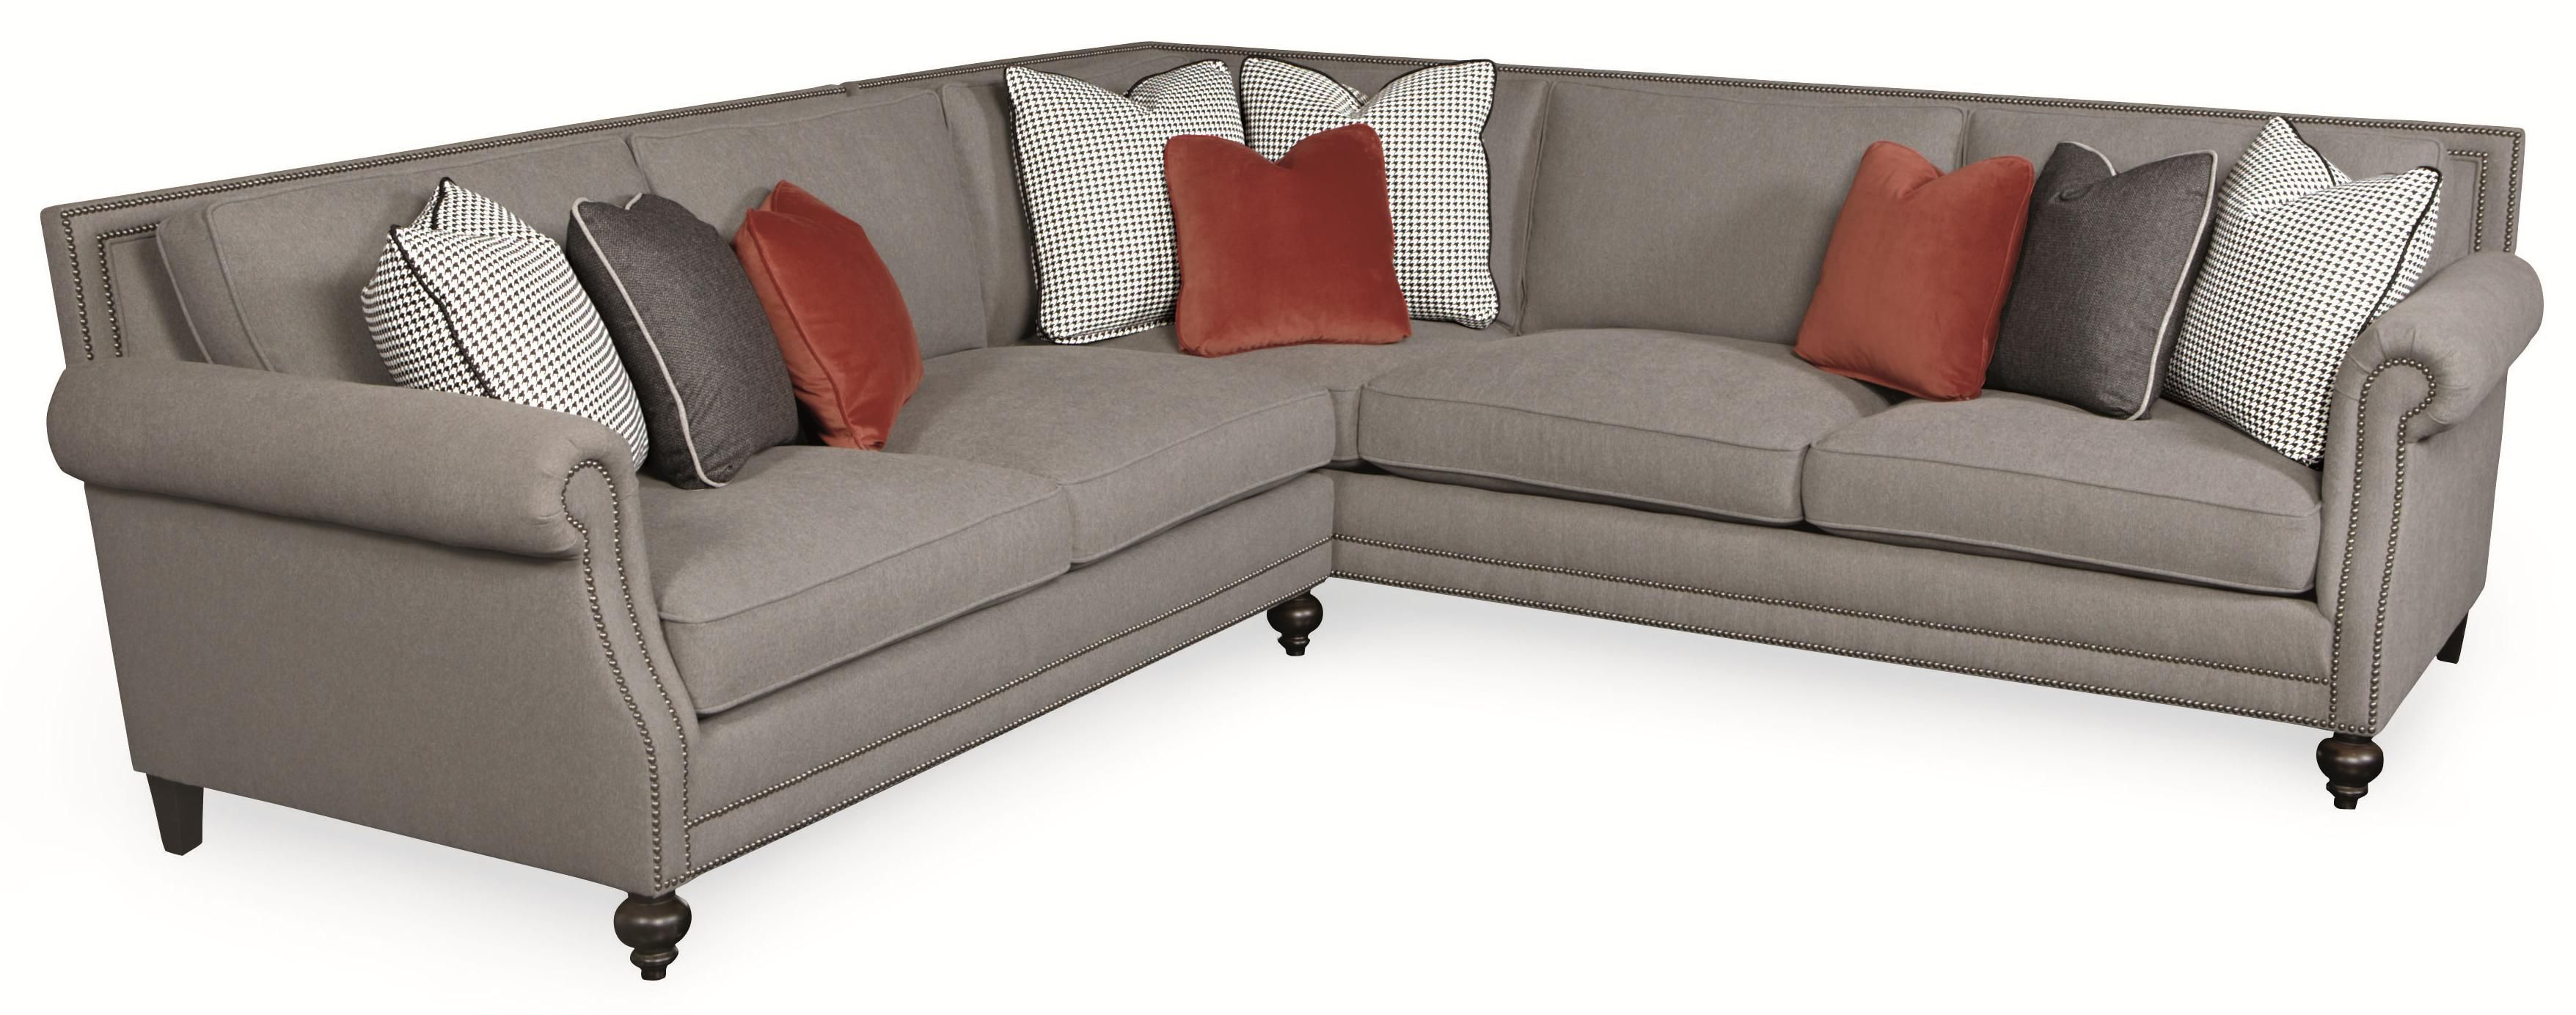 Brae Five Seat Sectional Sofa With Transitional Style By Bernhardt Brae Collection Spritnz